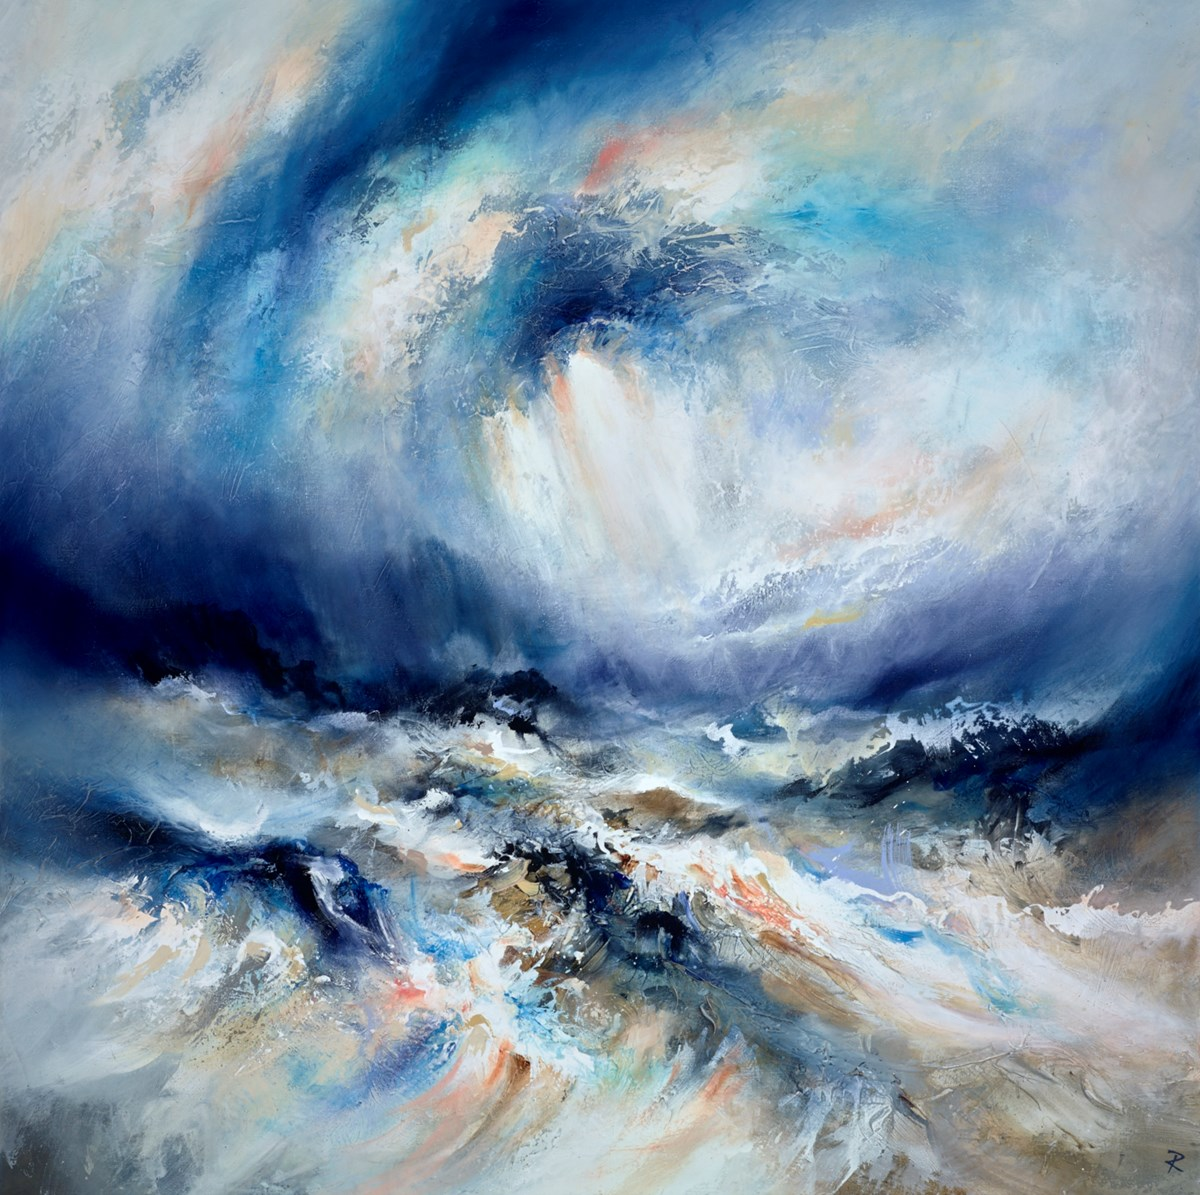 Battle of the Sea by chris and steve rocks -  sized 47x47 inches. Available from Whitewall Galleries